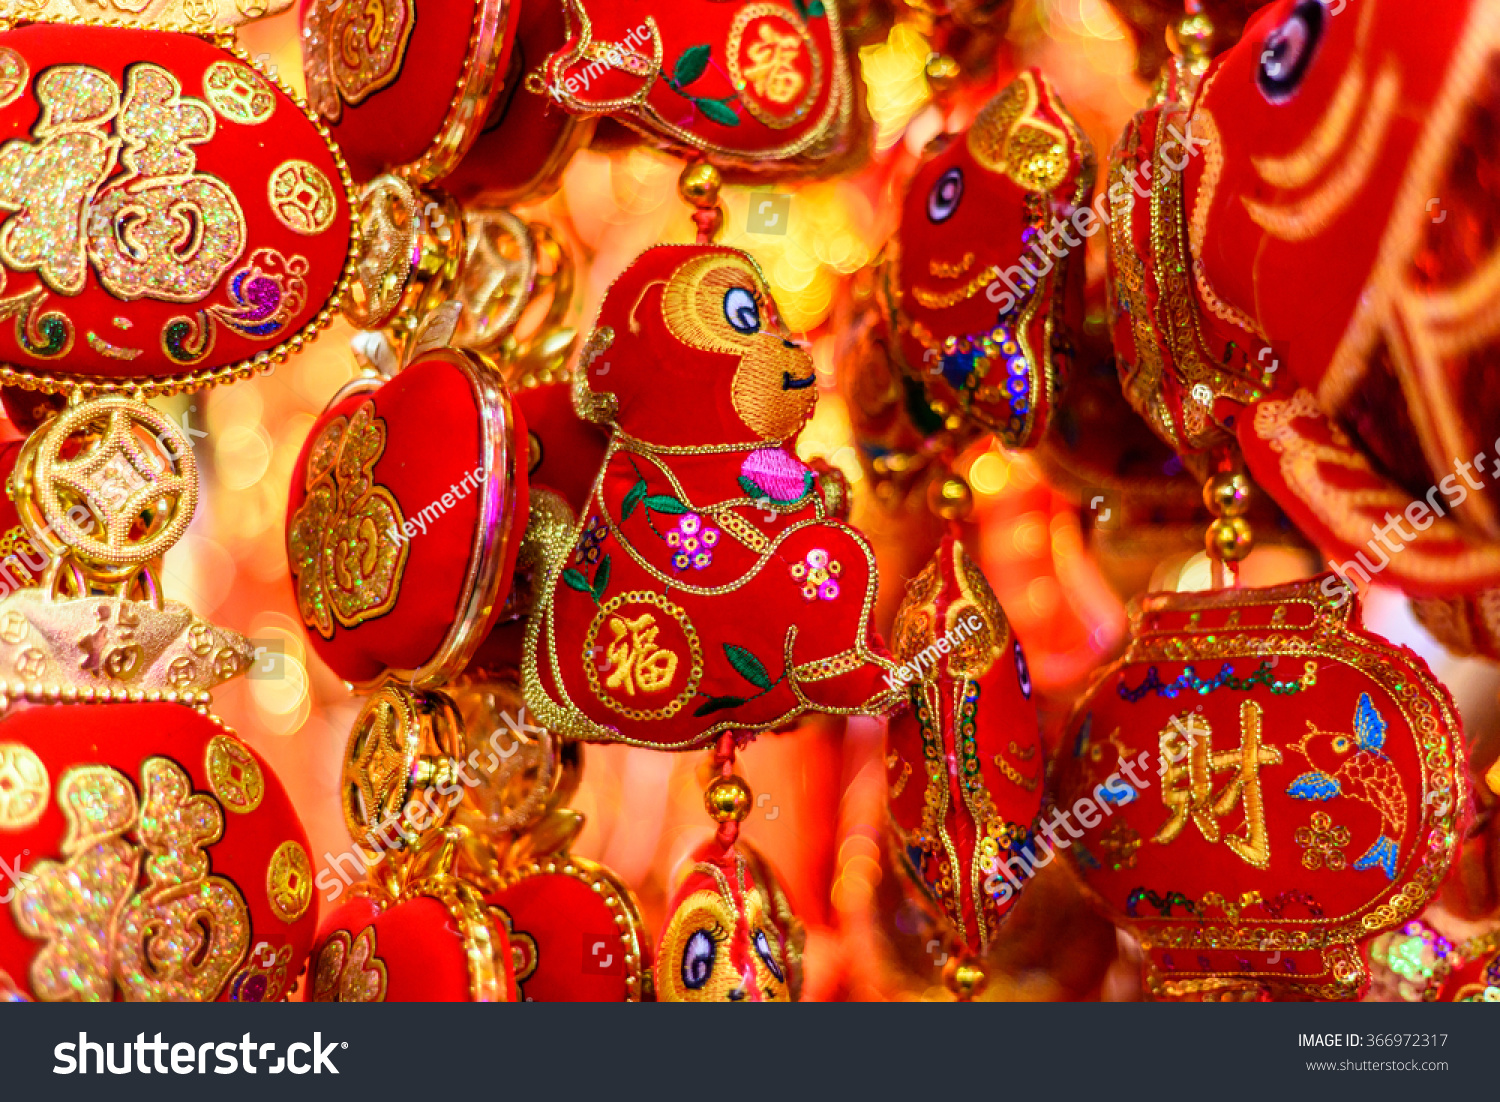 traditional chinese new year decorations happy stock photo 366972317 shutterstock. Black Bedroom Furniture Sets. Home Design Ideas